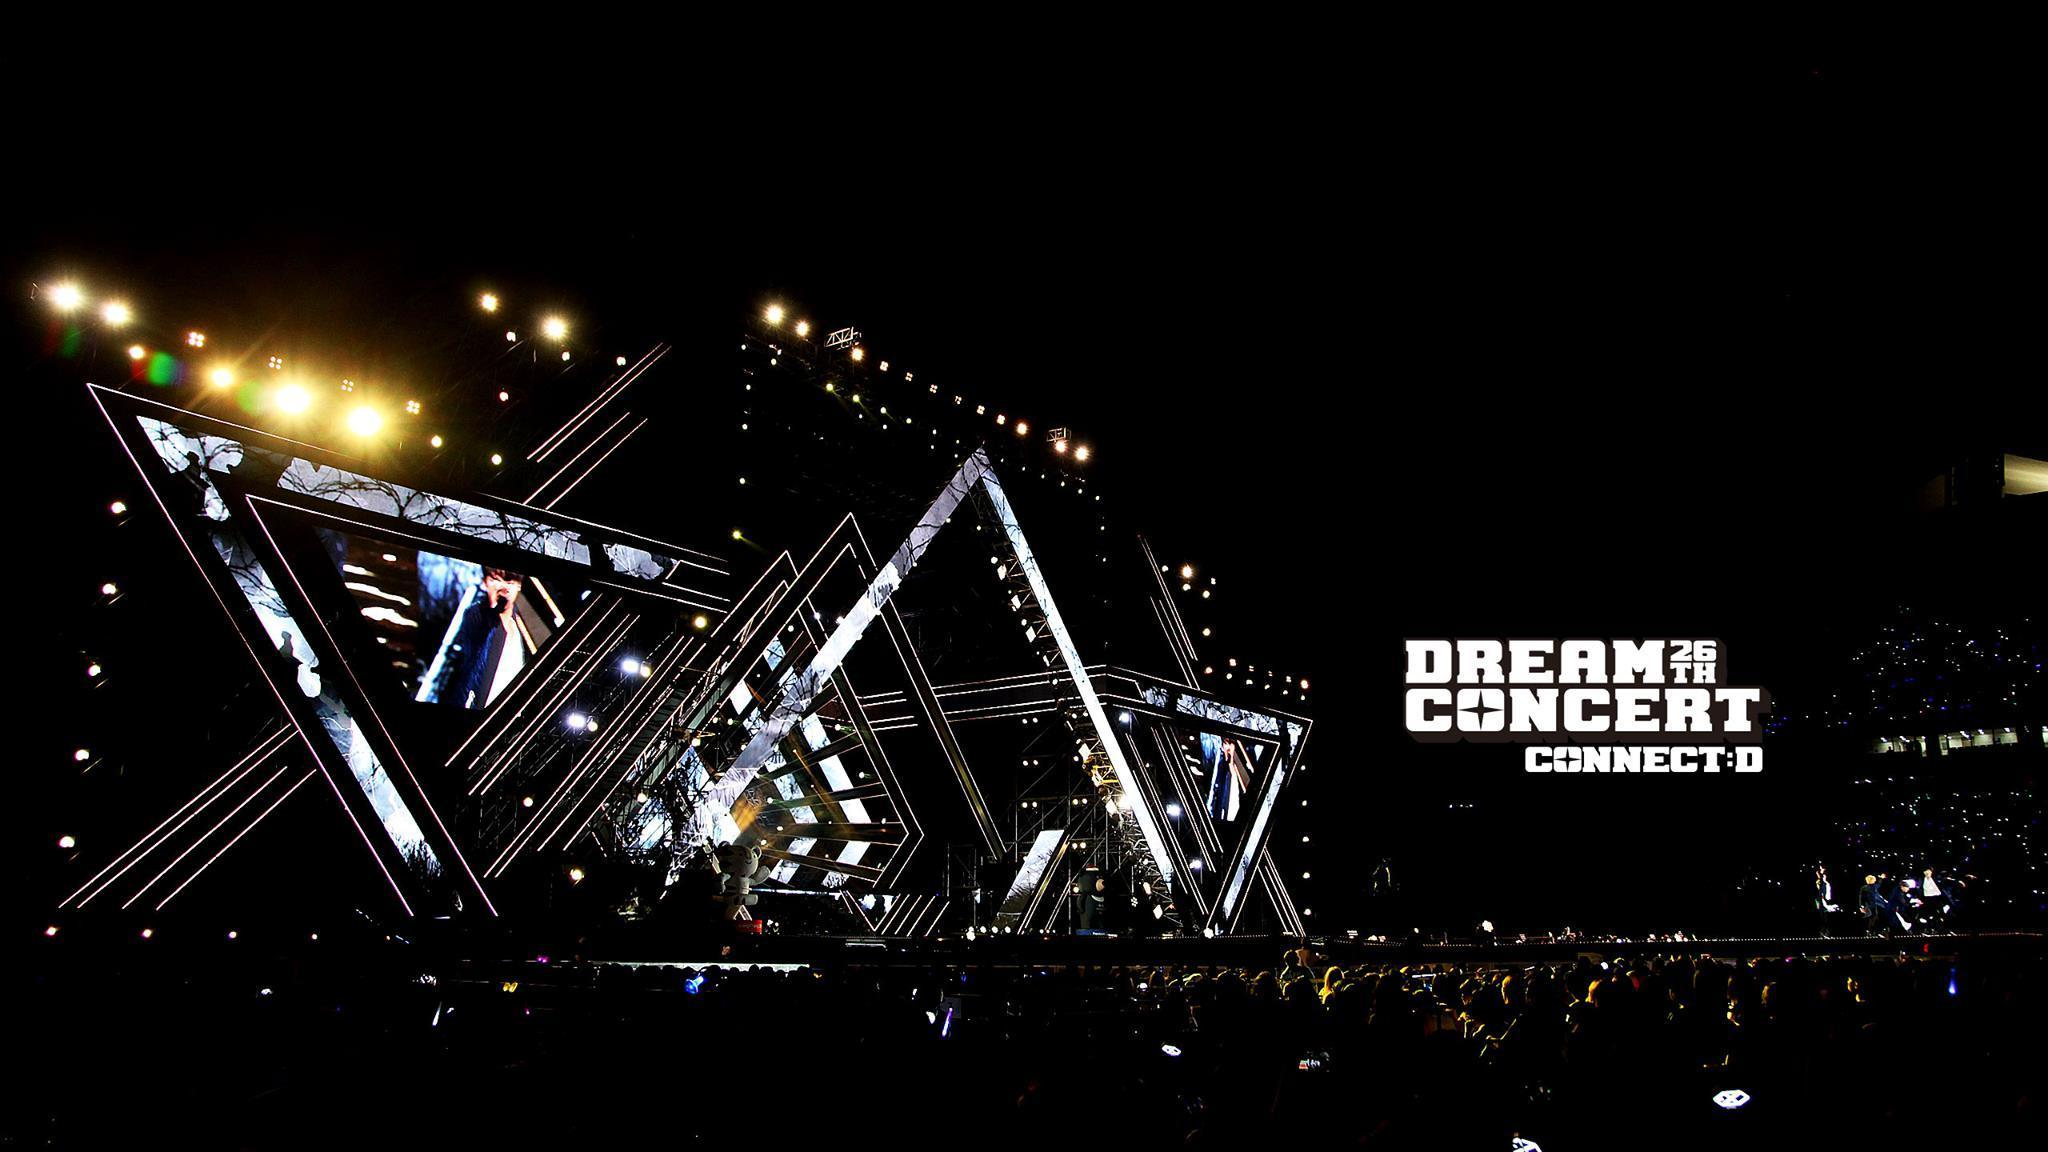 『DREAM CONCERT CONNECT:D』